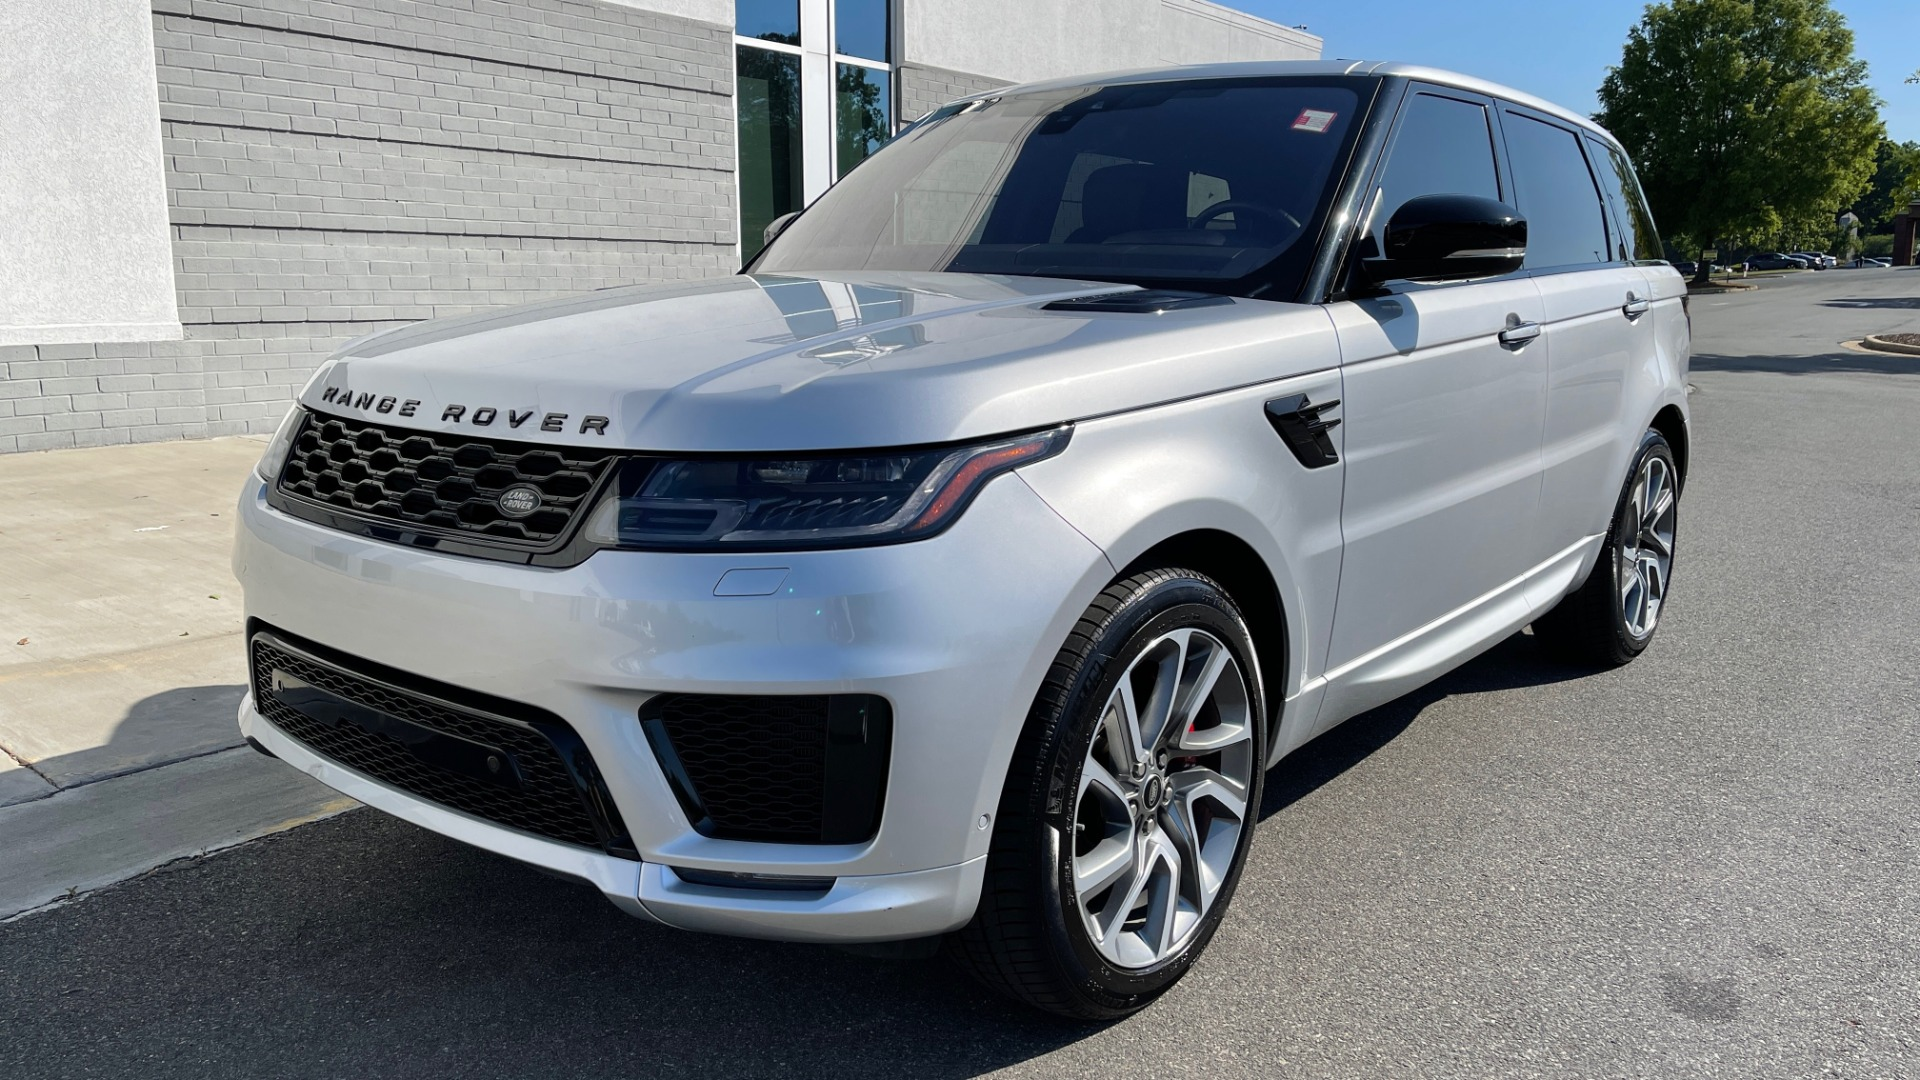 Used 2019 Land Rover RANGE ROVER SPORT HSE DYNAMIC / 3.0L SC V6 / 8-SPD / APPLE / NAV / SUNROOF / REARVIEW for sale Sold at Formula Imports in Charlotte NC 28227 4